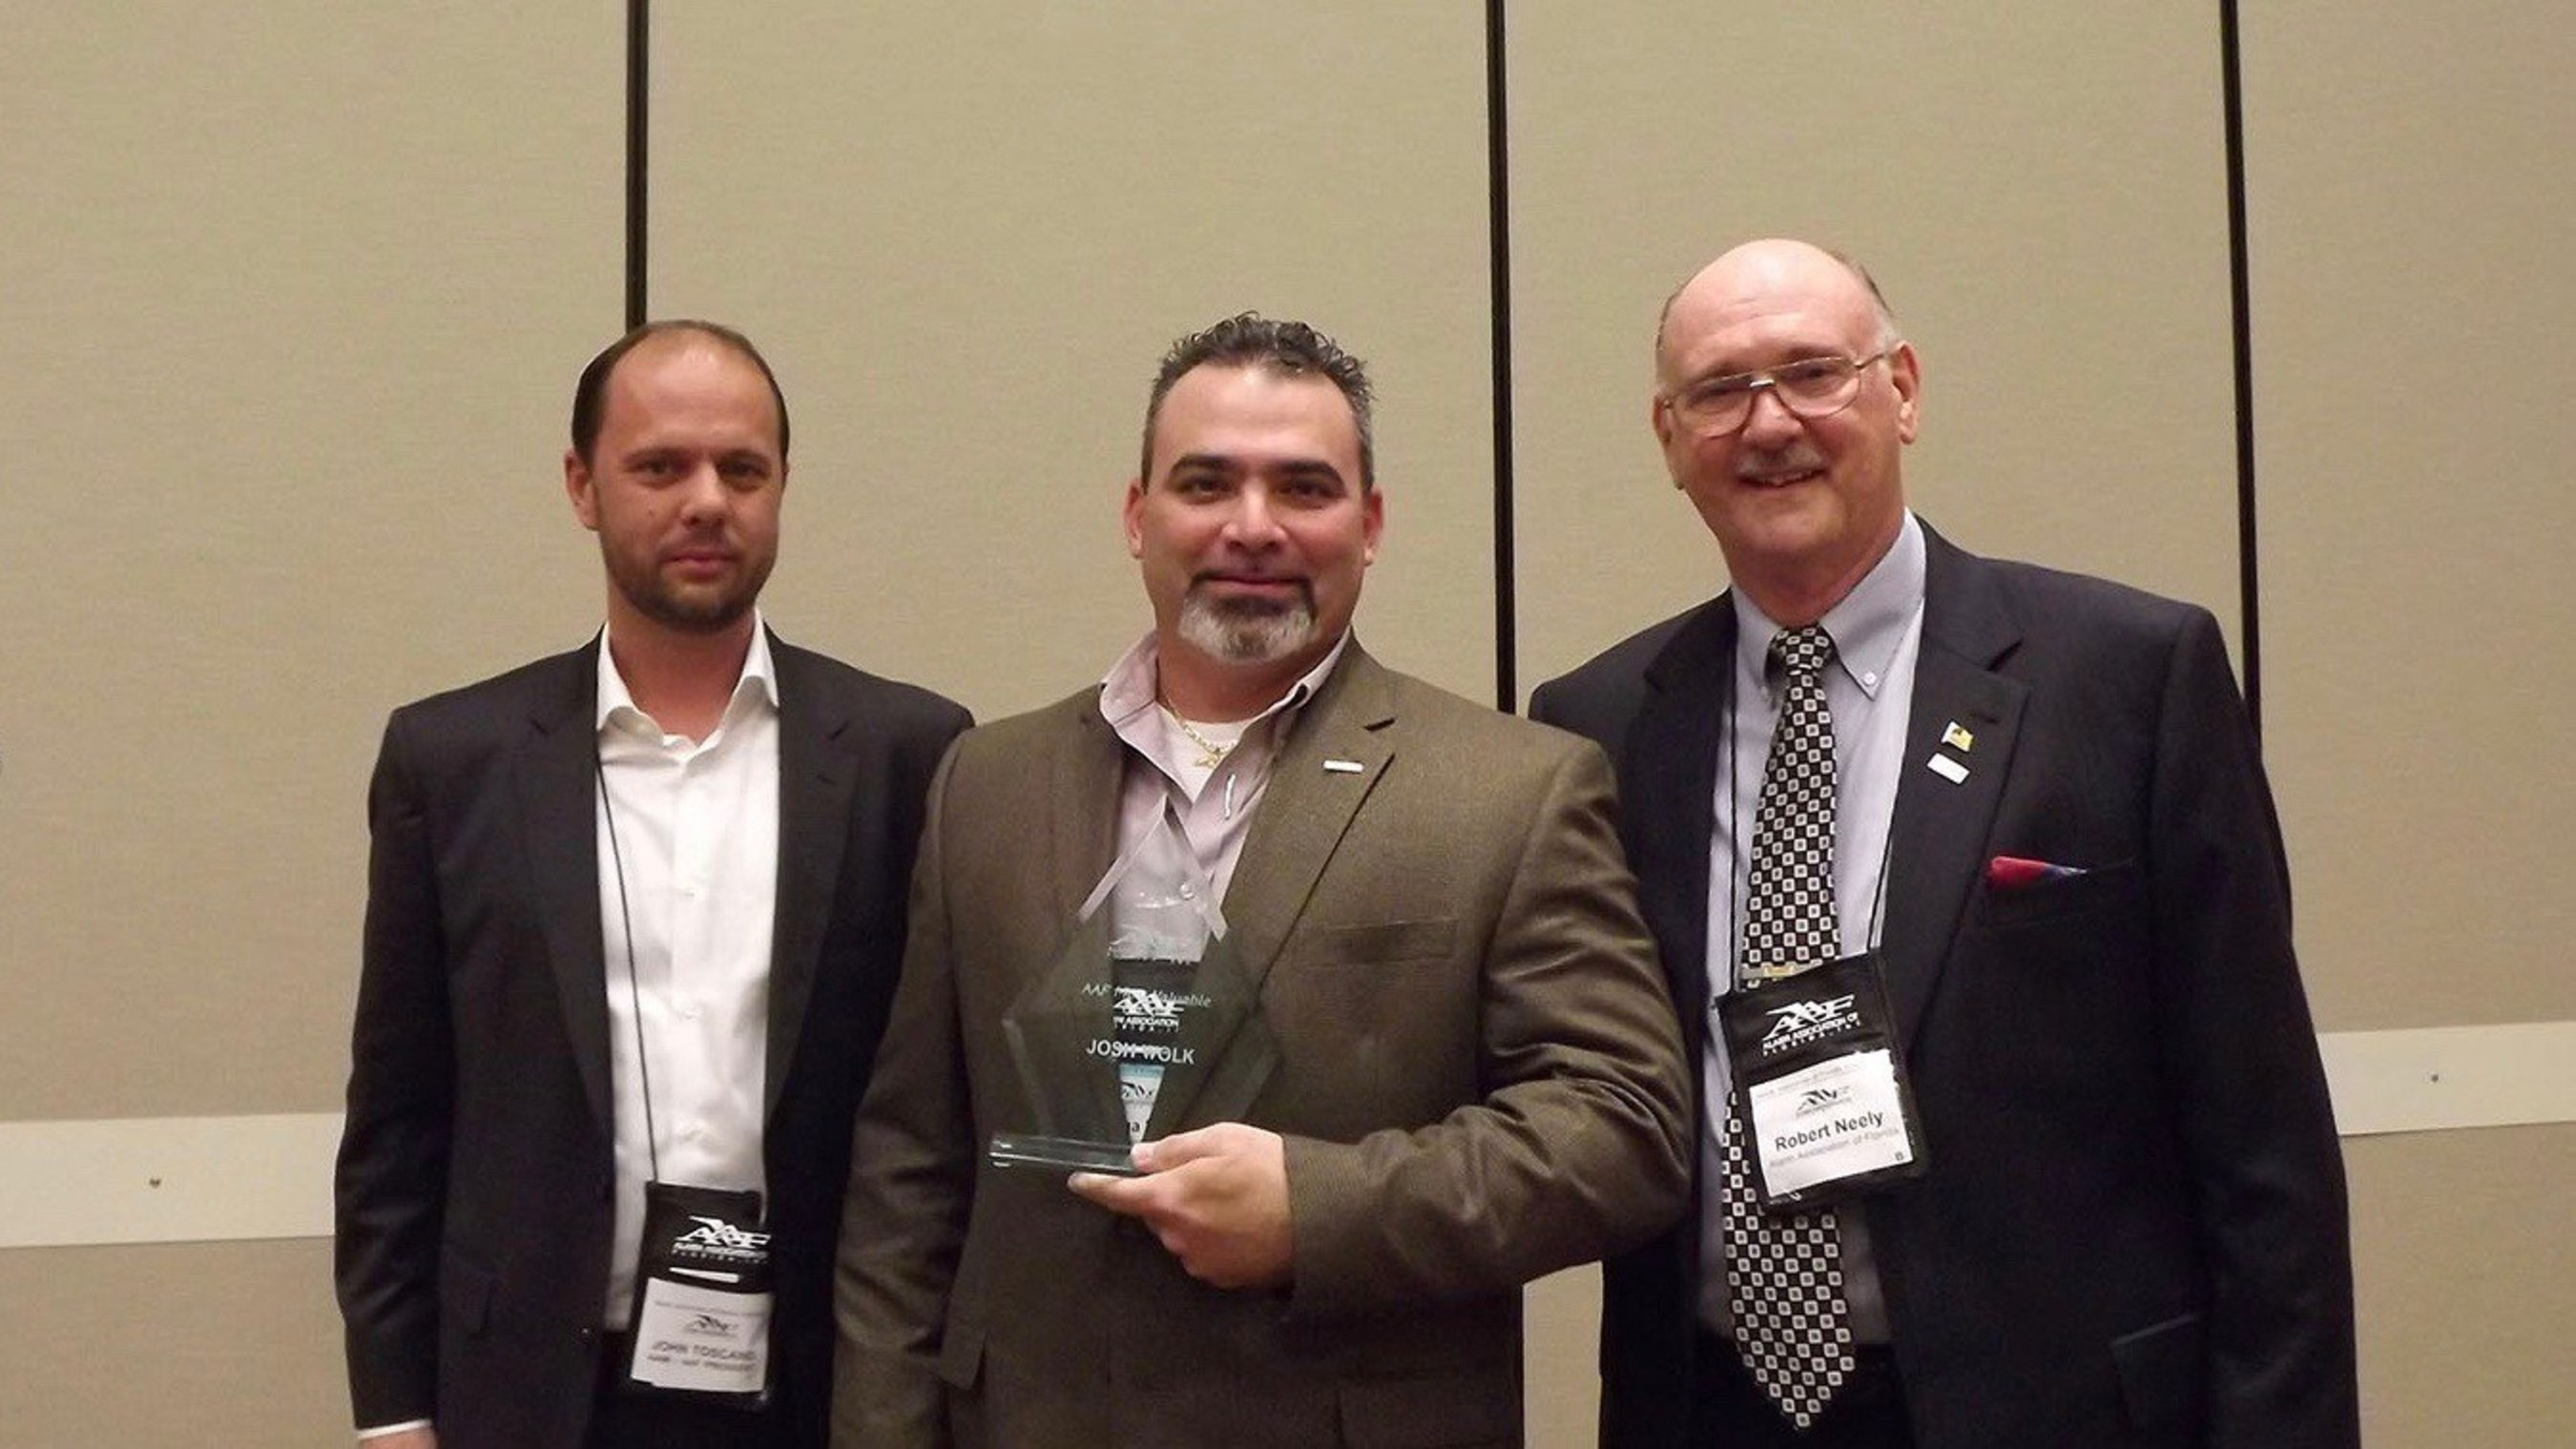 Red Hawk Fire & Security National Account Manager, Josh Wolk Named 2015 Most Valuable Person (MVP) by Alarm Association of Florida for his commitment to professional educational training for burglar and fire alarm agents in Florida. AAF Pres. John Toscano (left) and AAF Exec. Dir. Bob Neely (right) present award to Red Hawk's Josh Wolk (center).